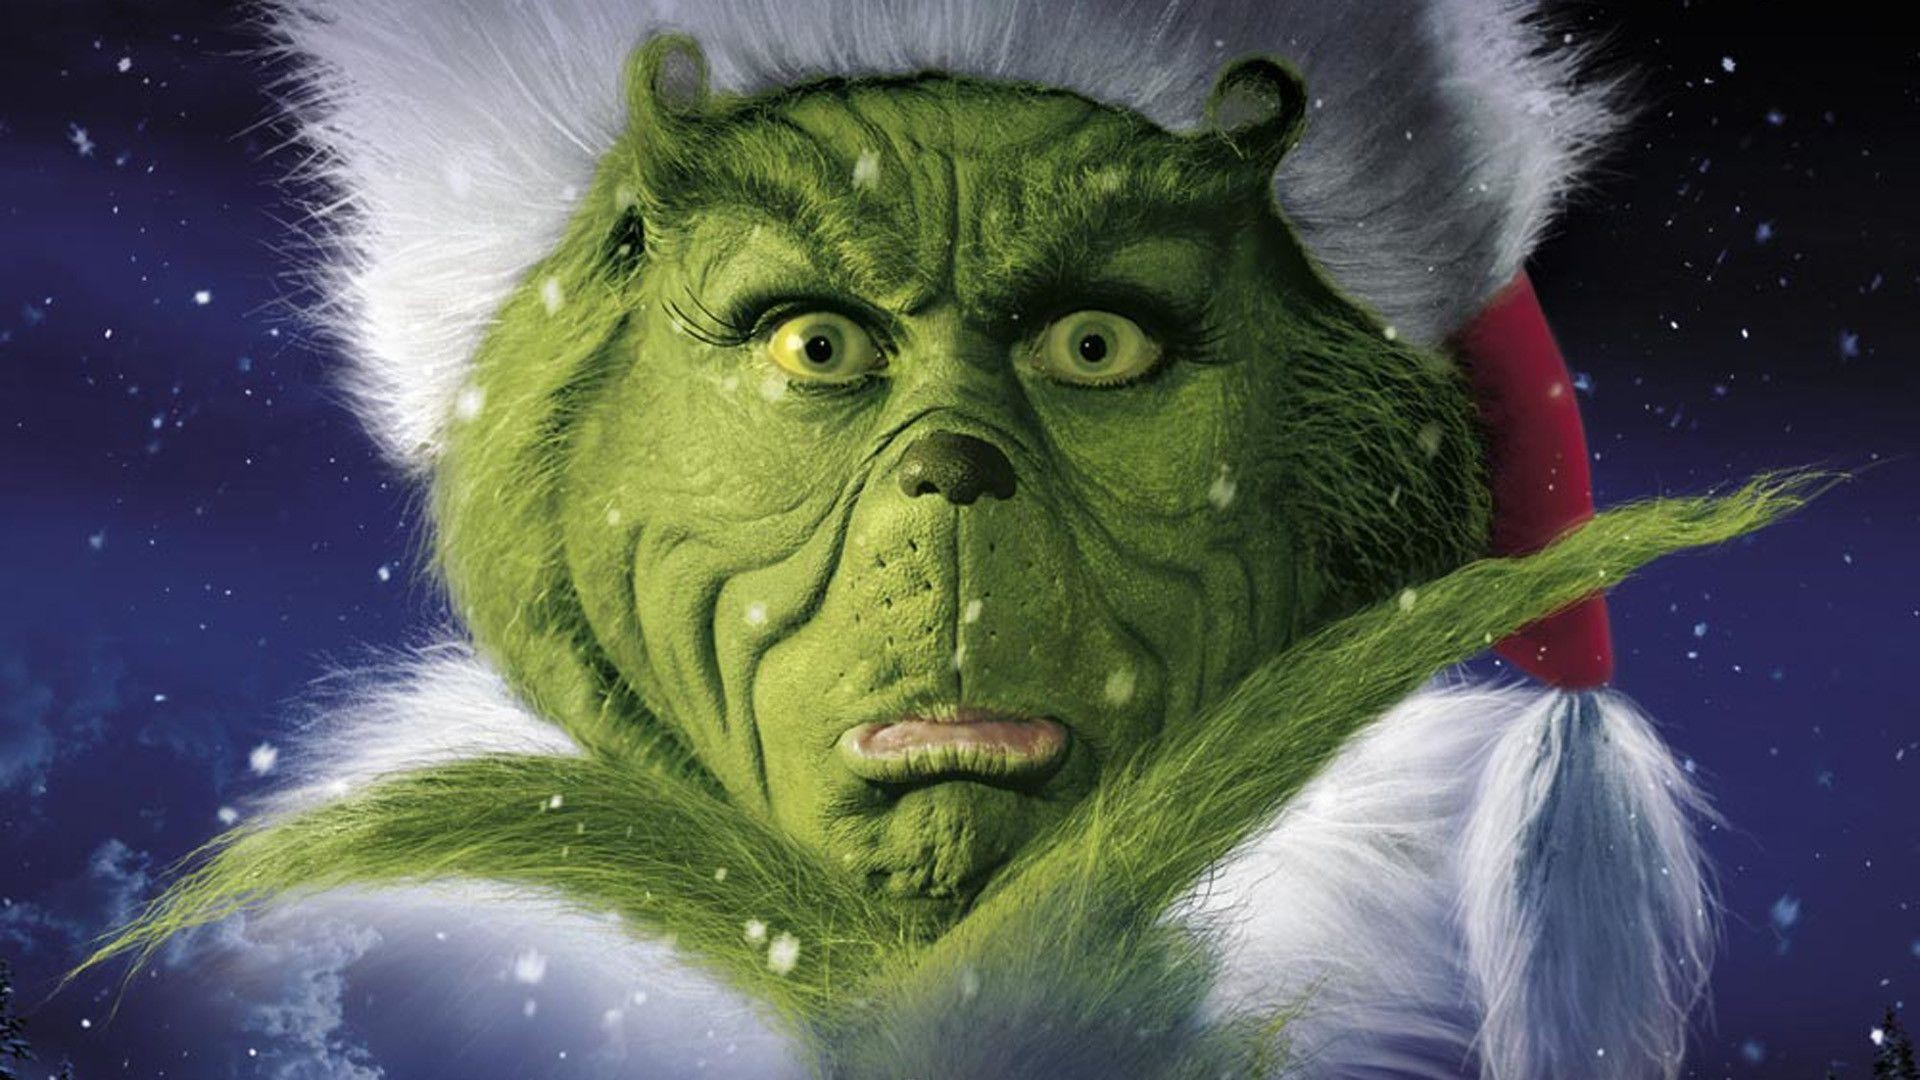 The Grinch Wallpaper 66 pictures 1920x1080